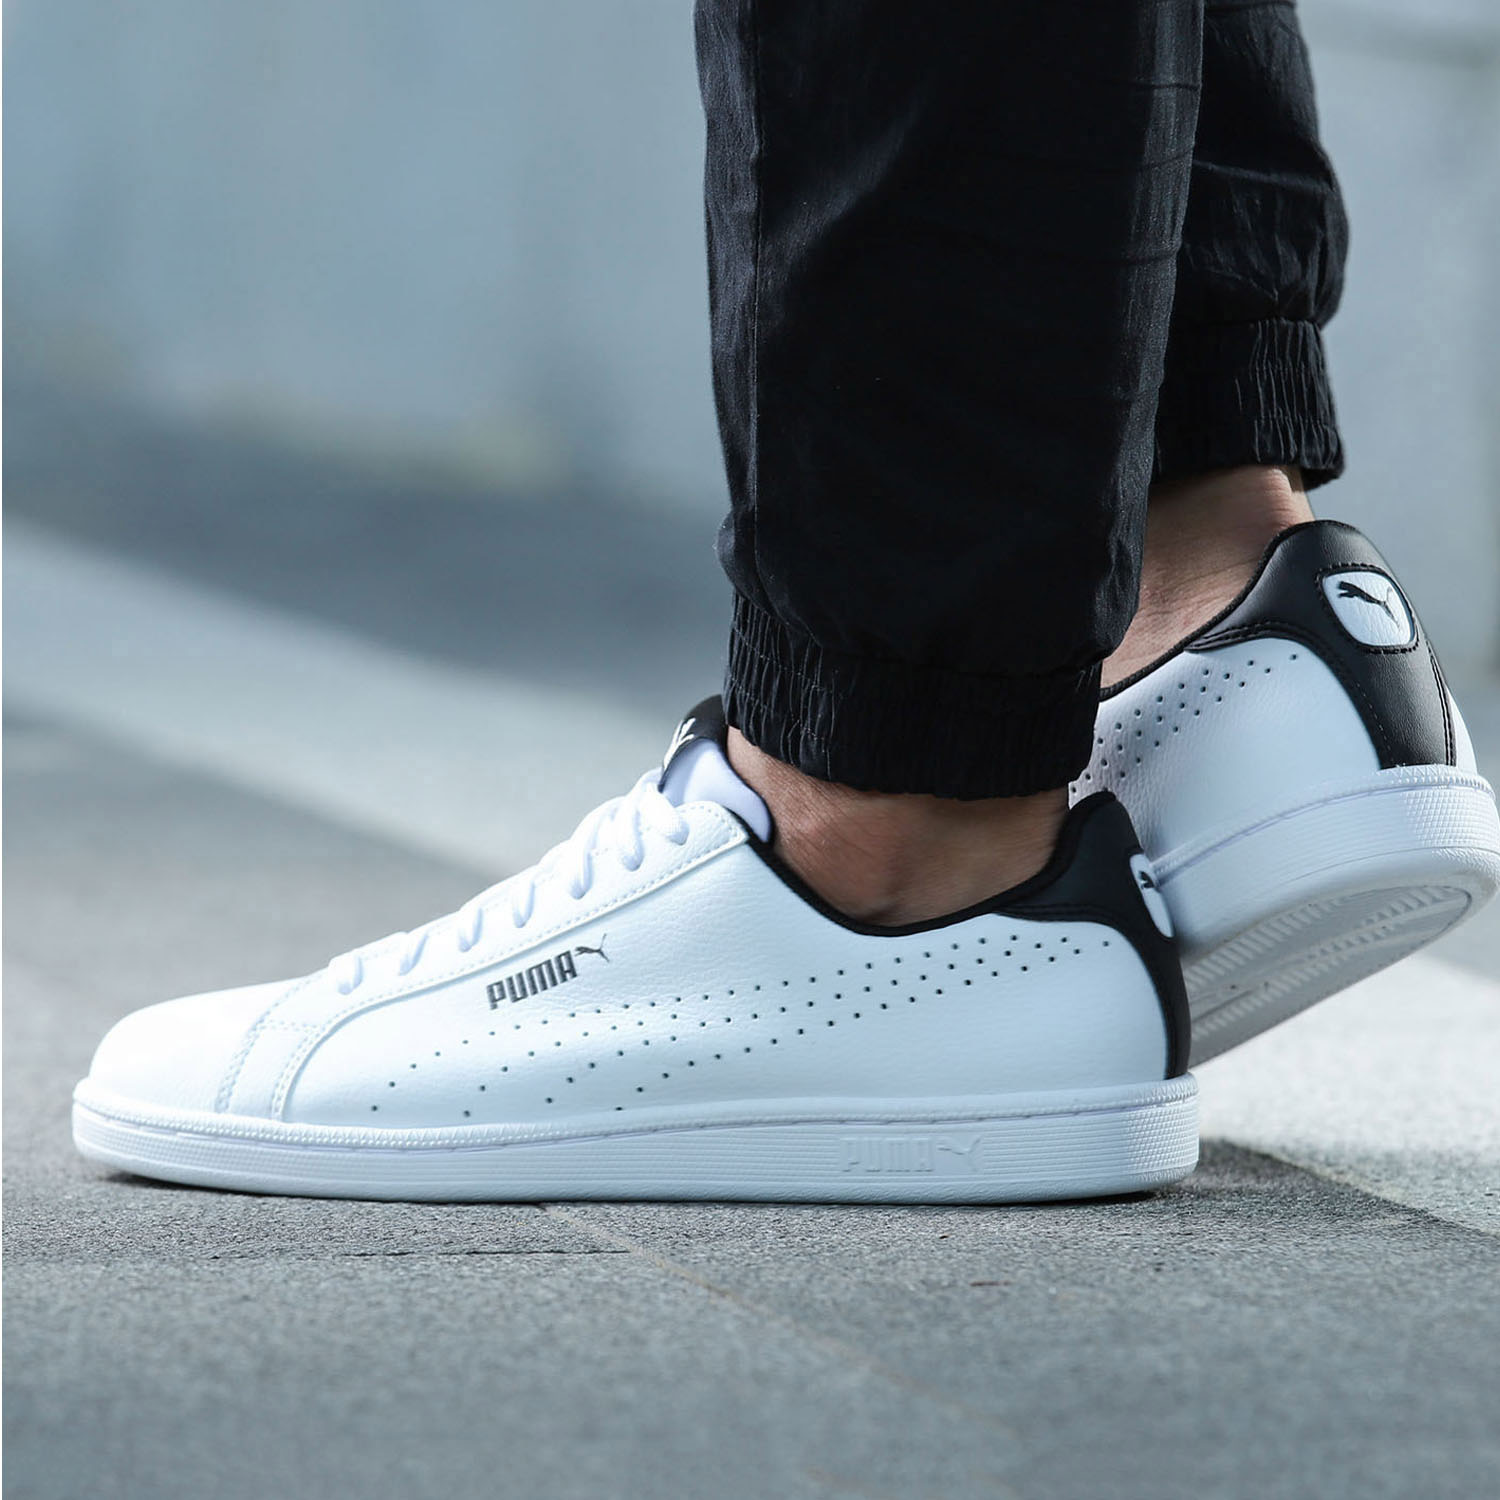 Puma Puma men and women shoes breathable lightweight sports shoes casual shoes  2017 New small white shoes 36372202 b97047809